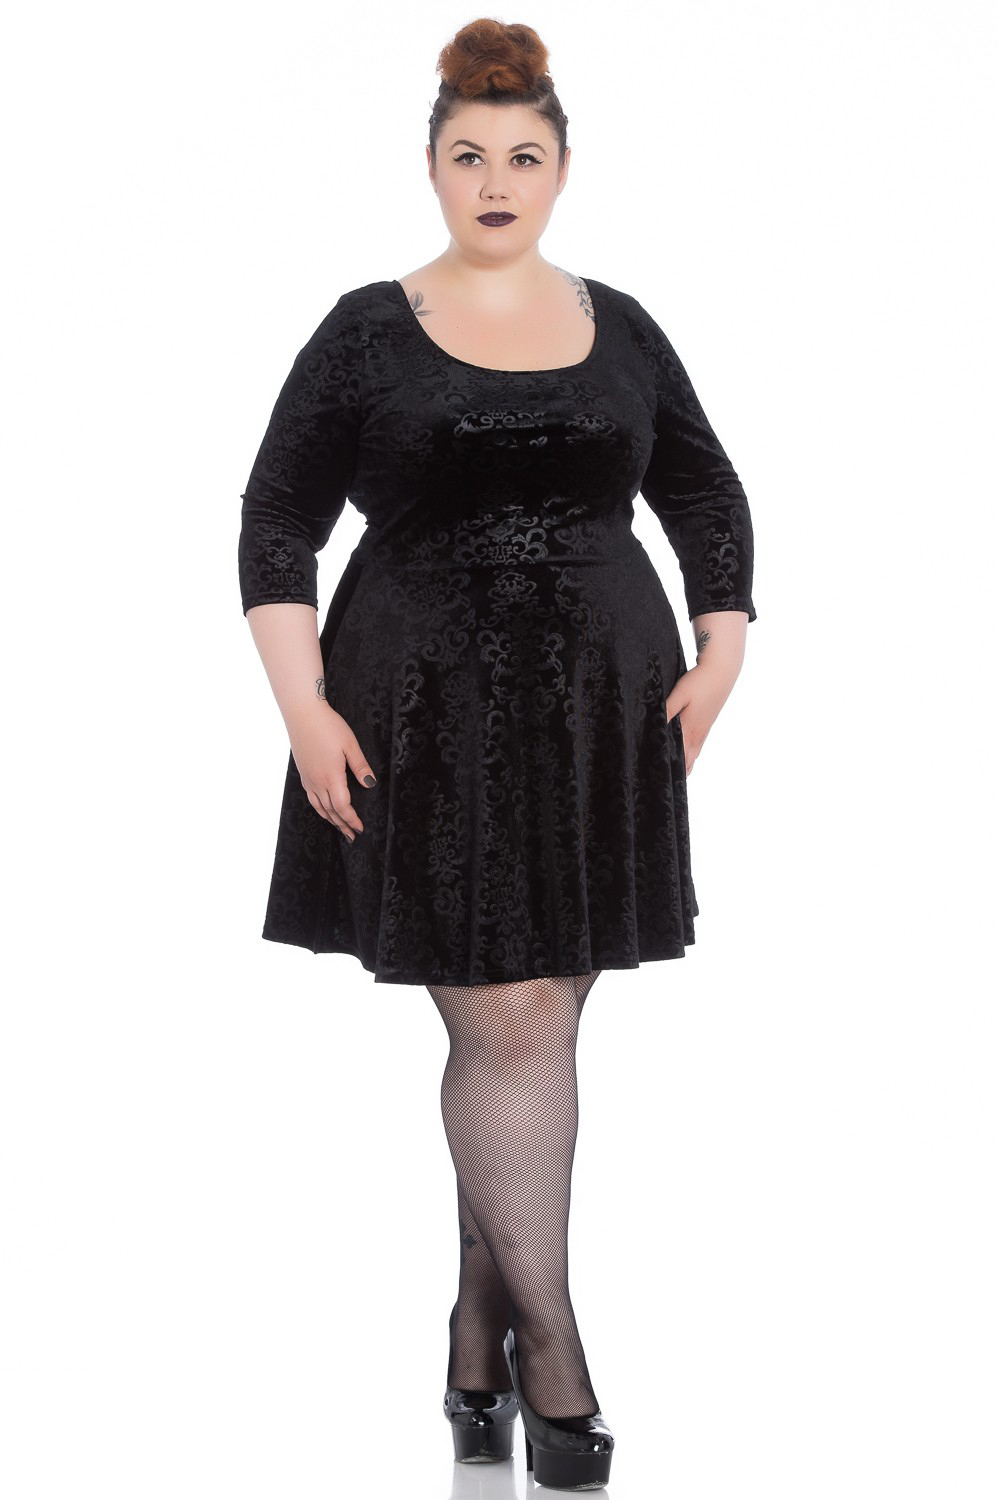 Margot Plus Sized Skater Dress by Hell Bunny / Spin Doctor - in Black Velvet Filagree - SALE